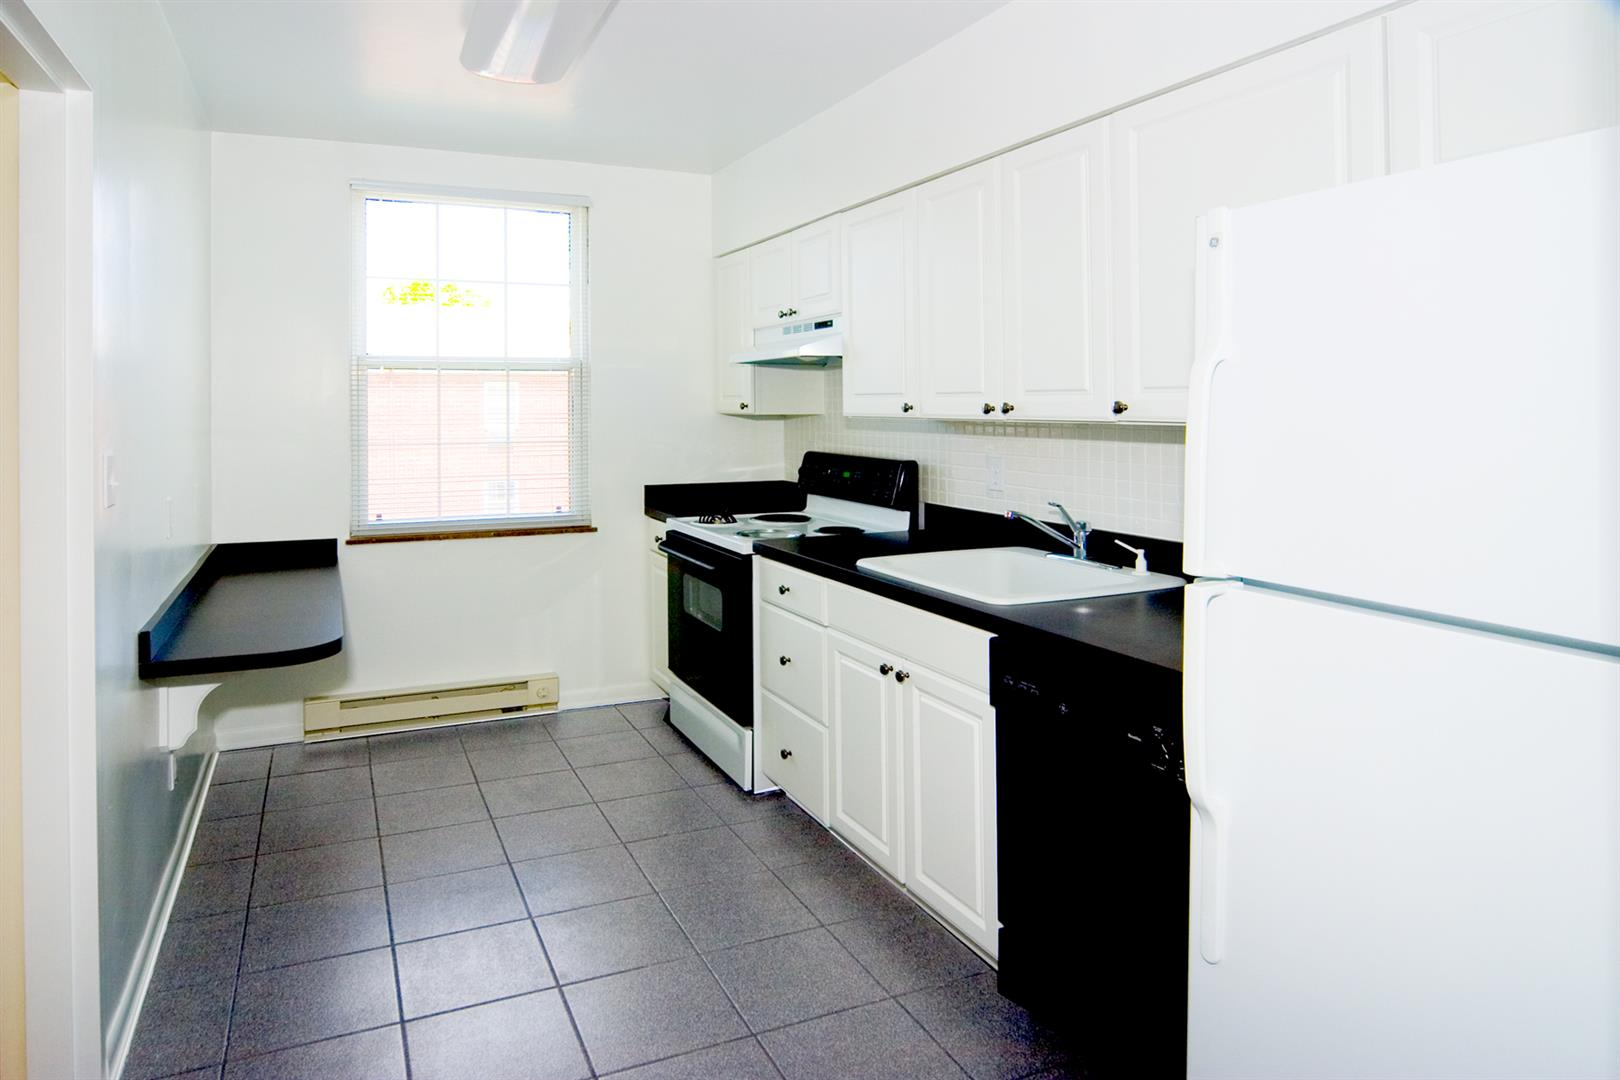 Upscale 1-Bedroom House In Malvern